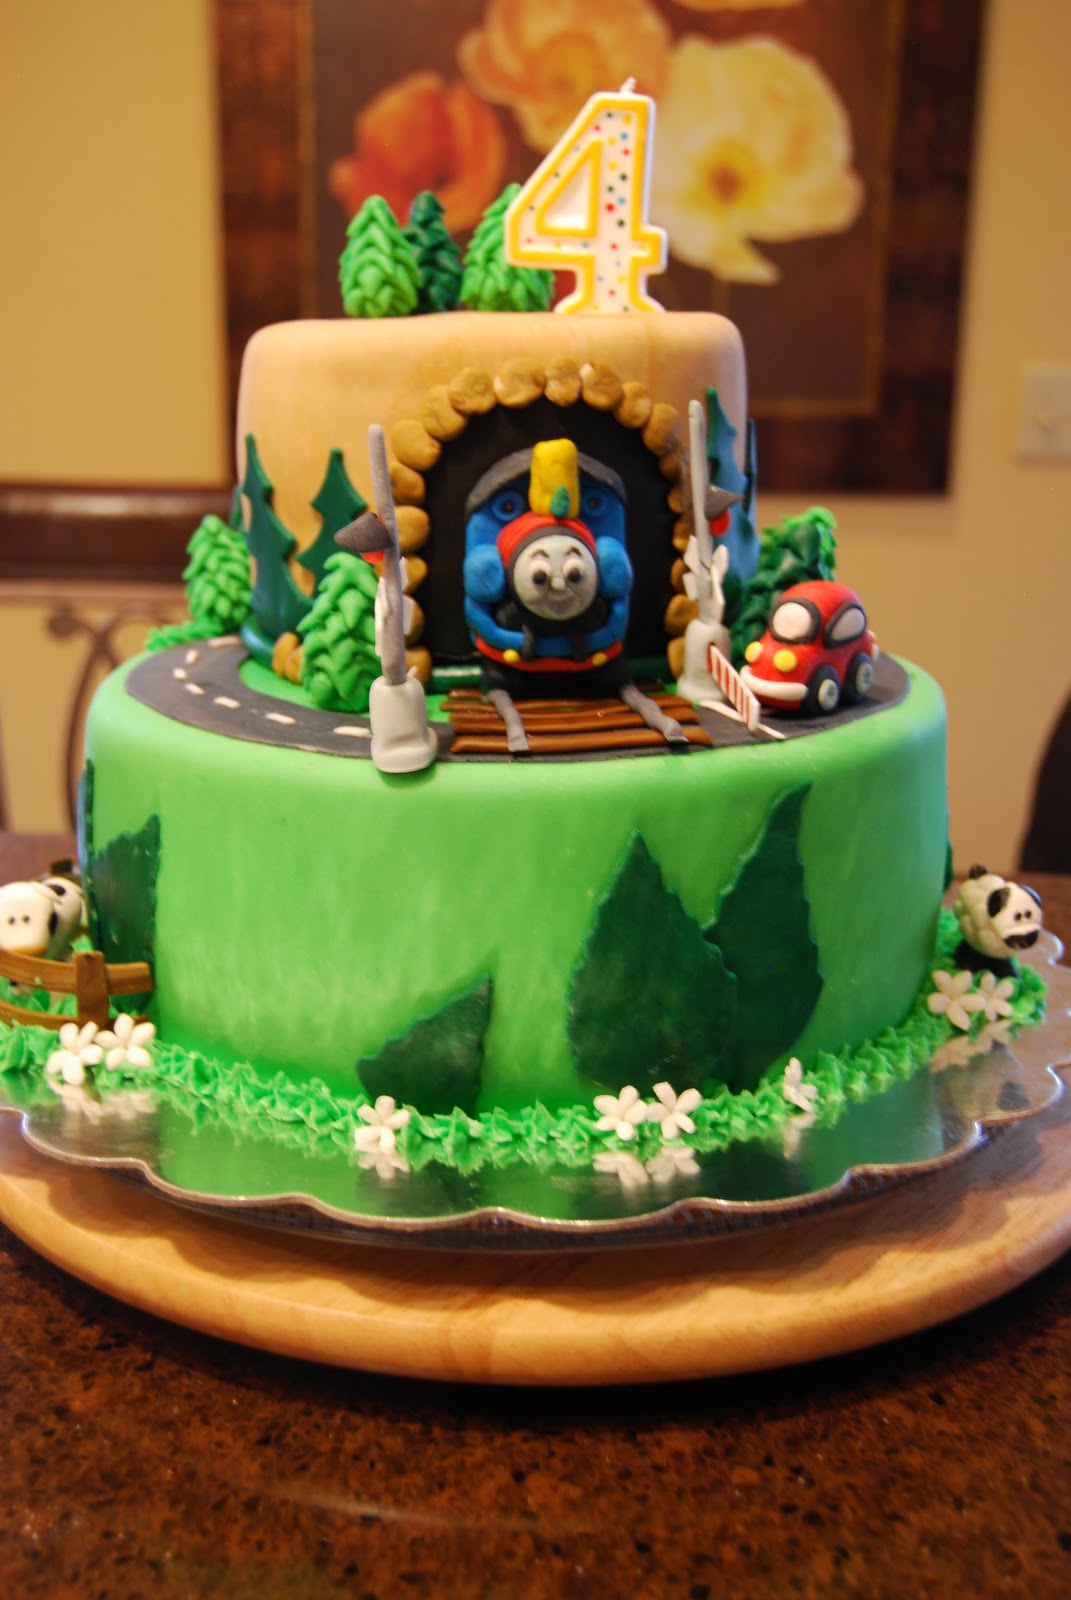 Gamma Susies This N That Thomas The Train Cake With Crossing Gates